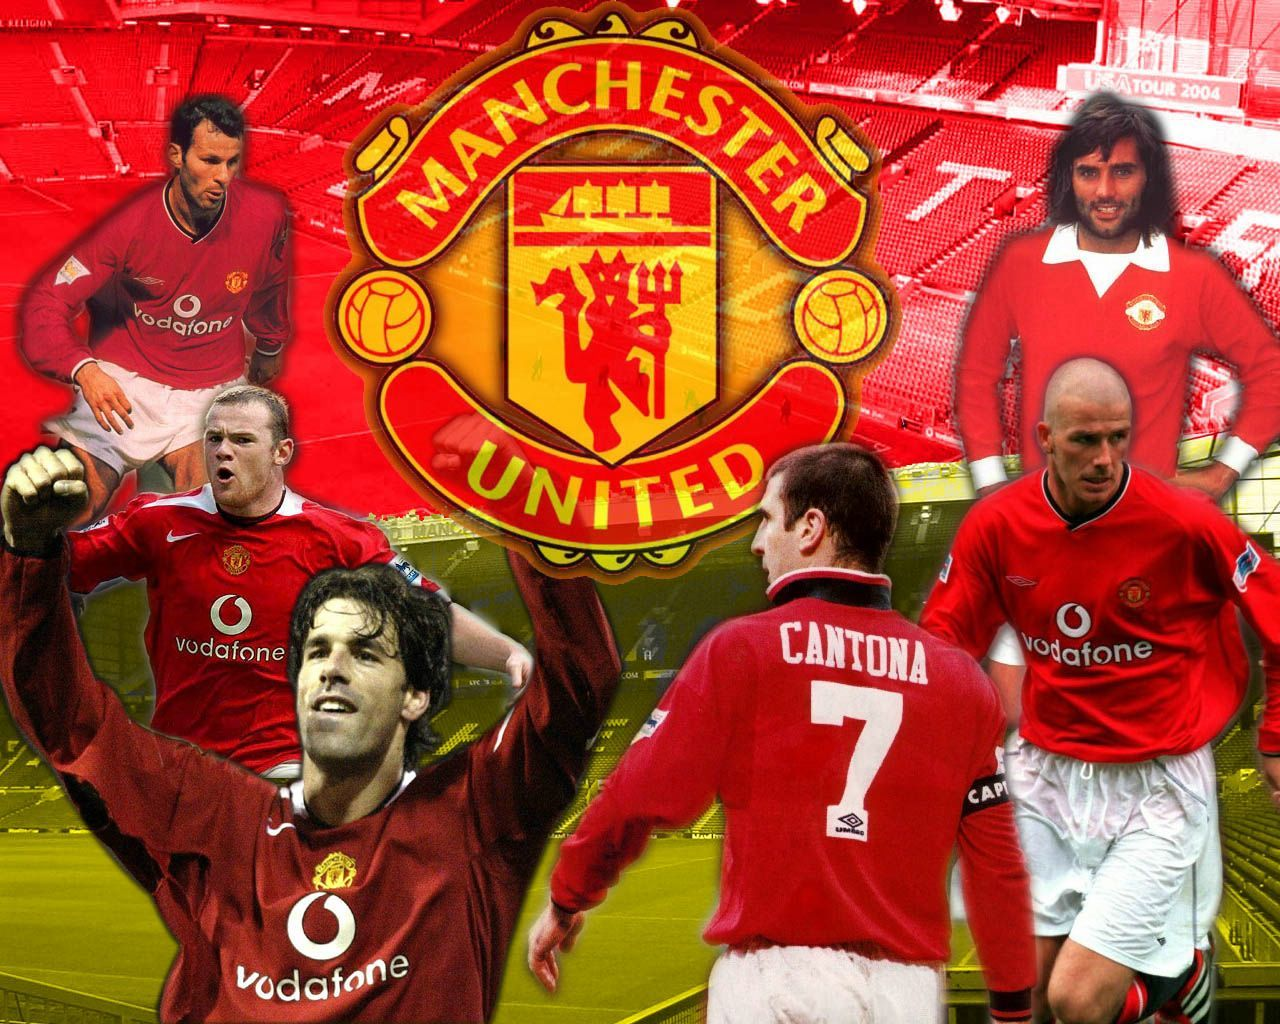 Manchesterunitedwallpapers Org Manchester United Wallpaper Manchester United Logo Manchester United Images